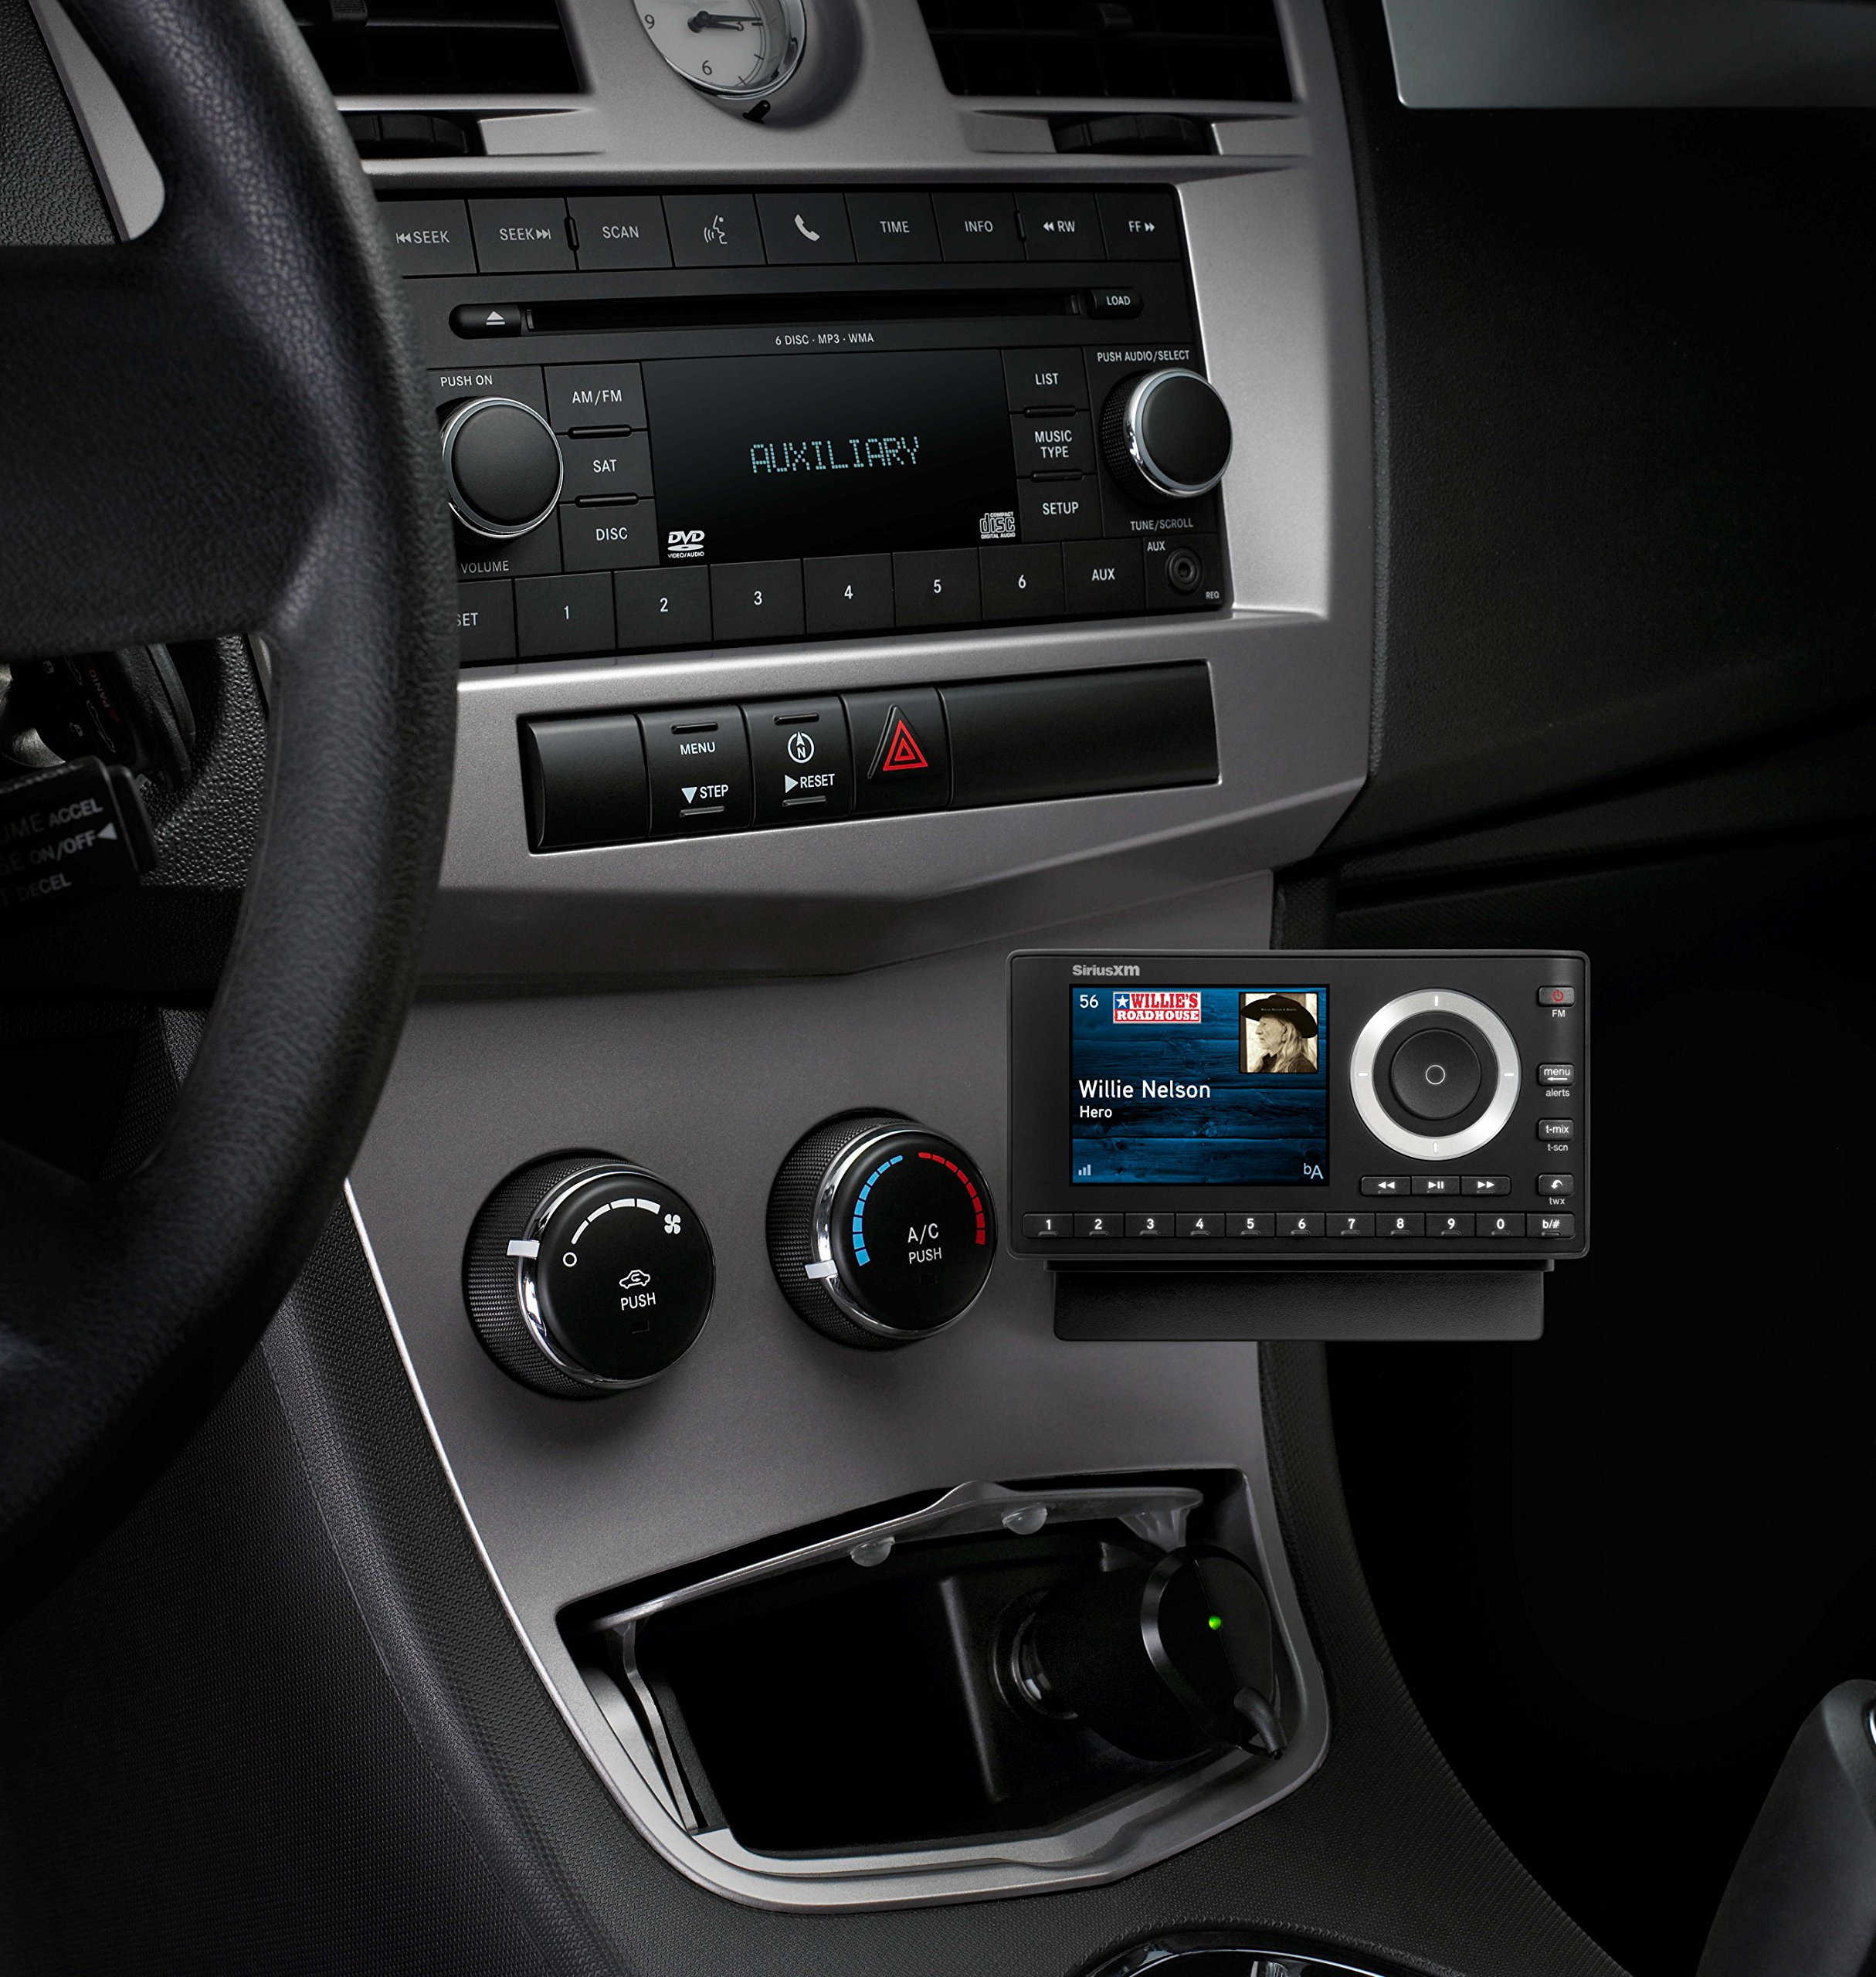 SiriusXM SXPL1V1 Onyx Plus Satellite Radio with Vehicle Kit with Free 3 Months Satellite and Streaming Service by SiriusXM (Image #5)